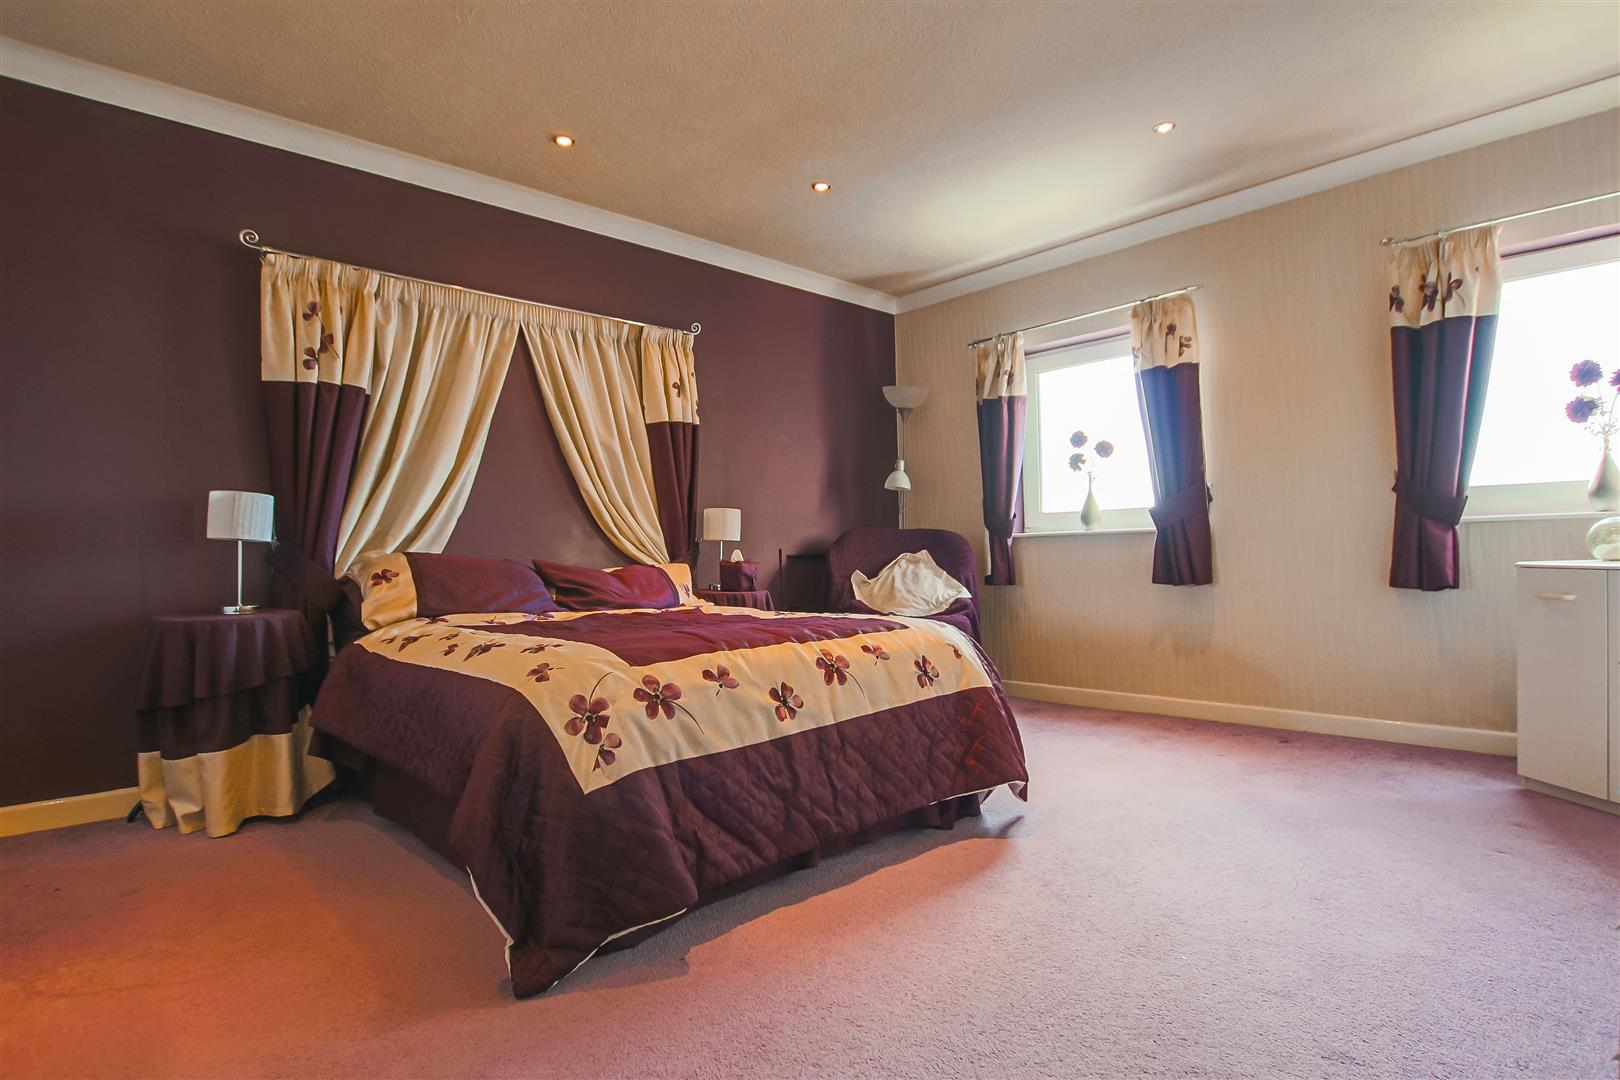 4 Bedroom Detached House For Sale - Image 16